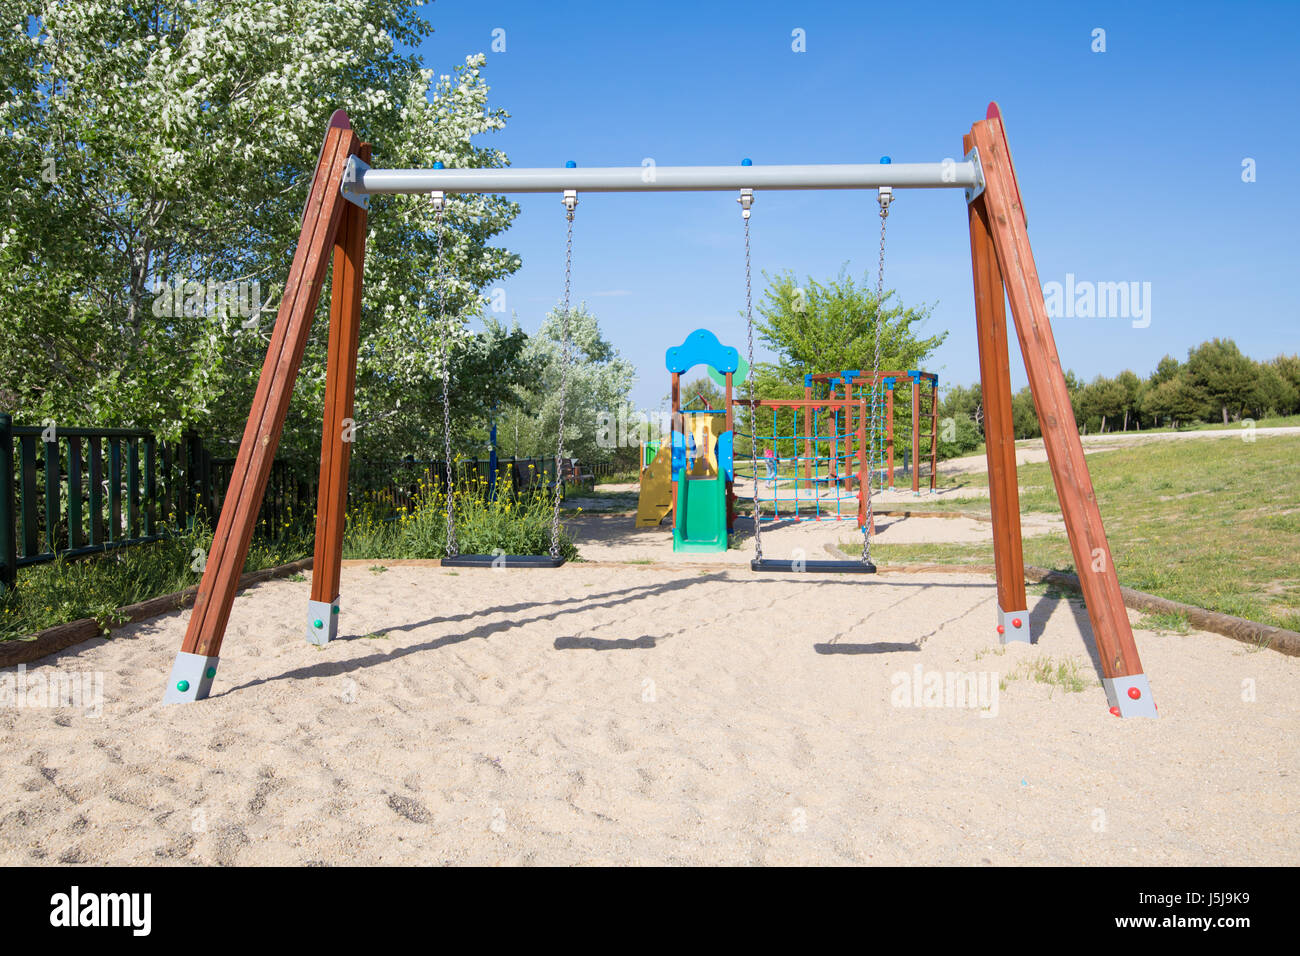 Plastic Two Swing Sets On Earth Sand Ground In Playground